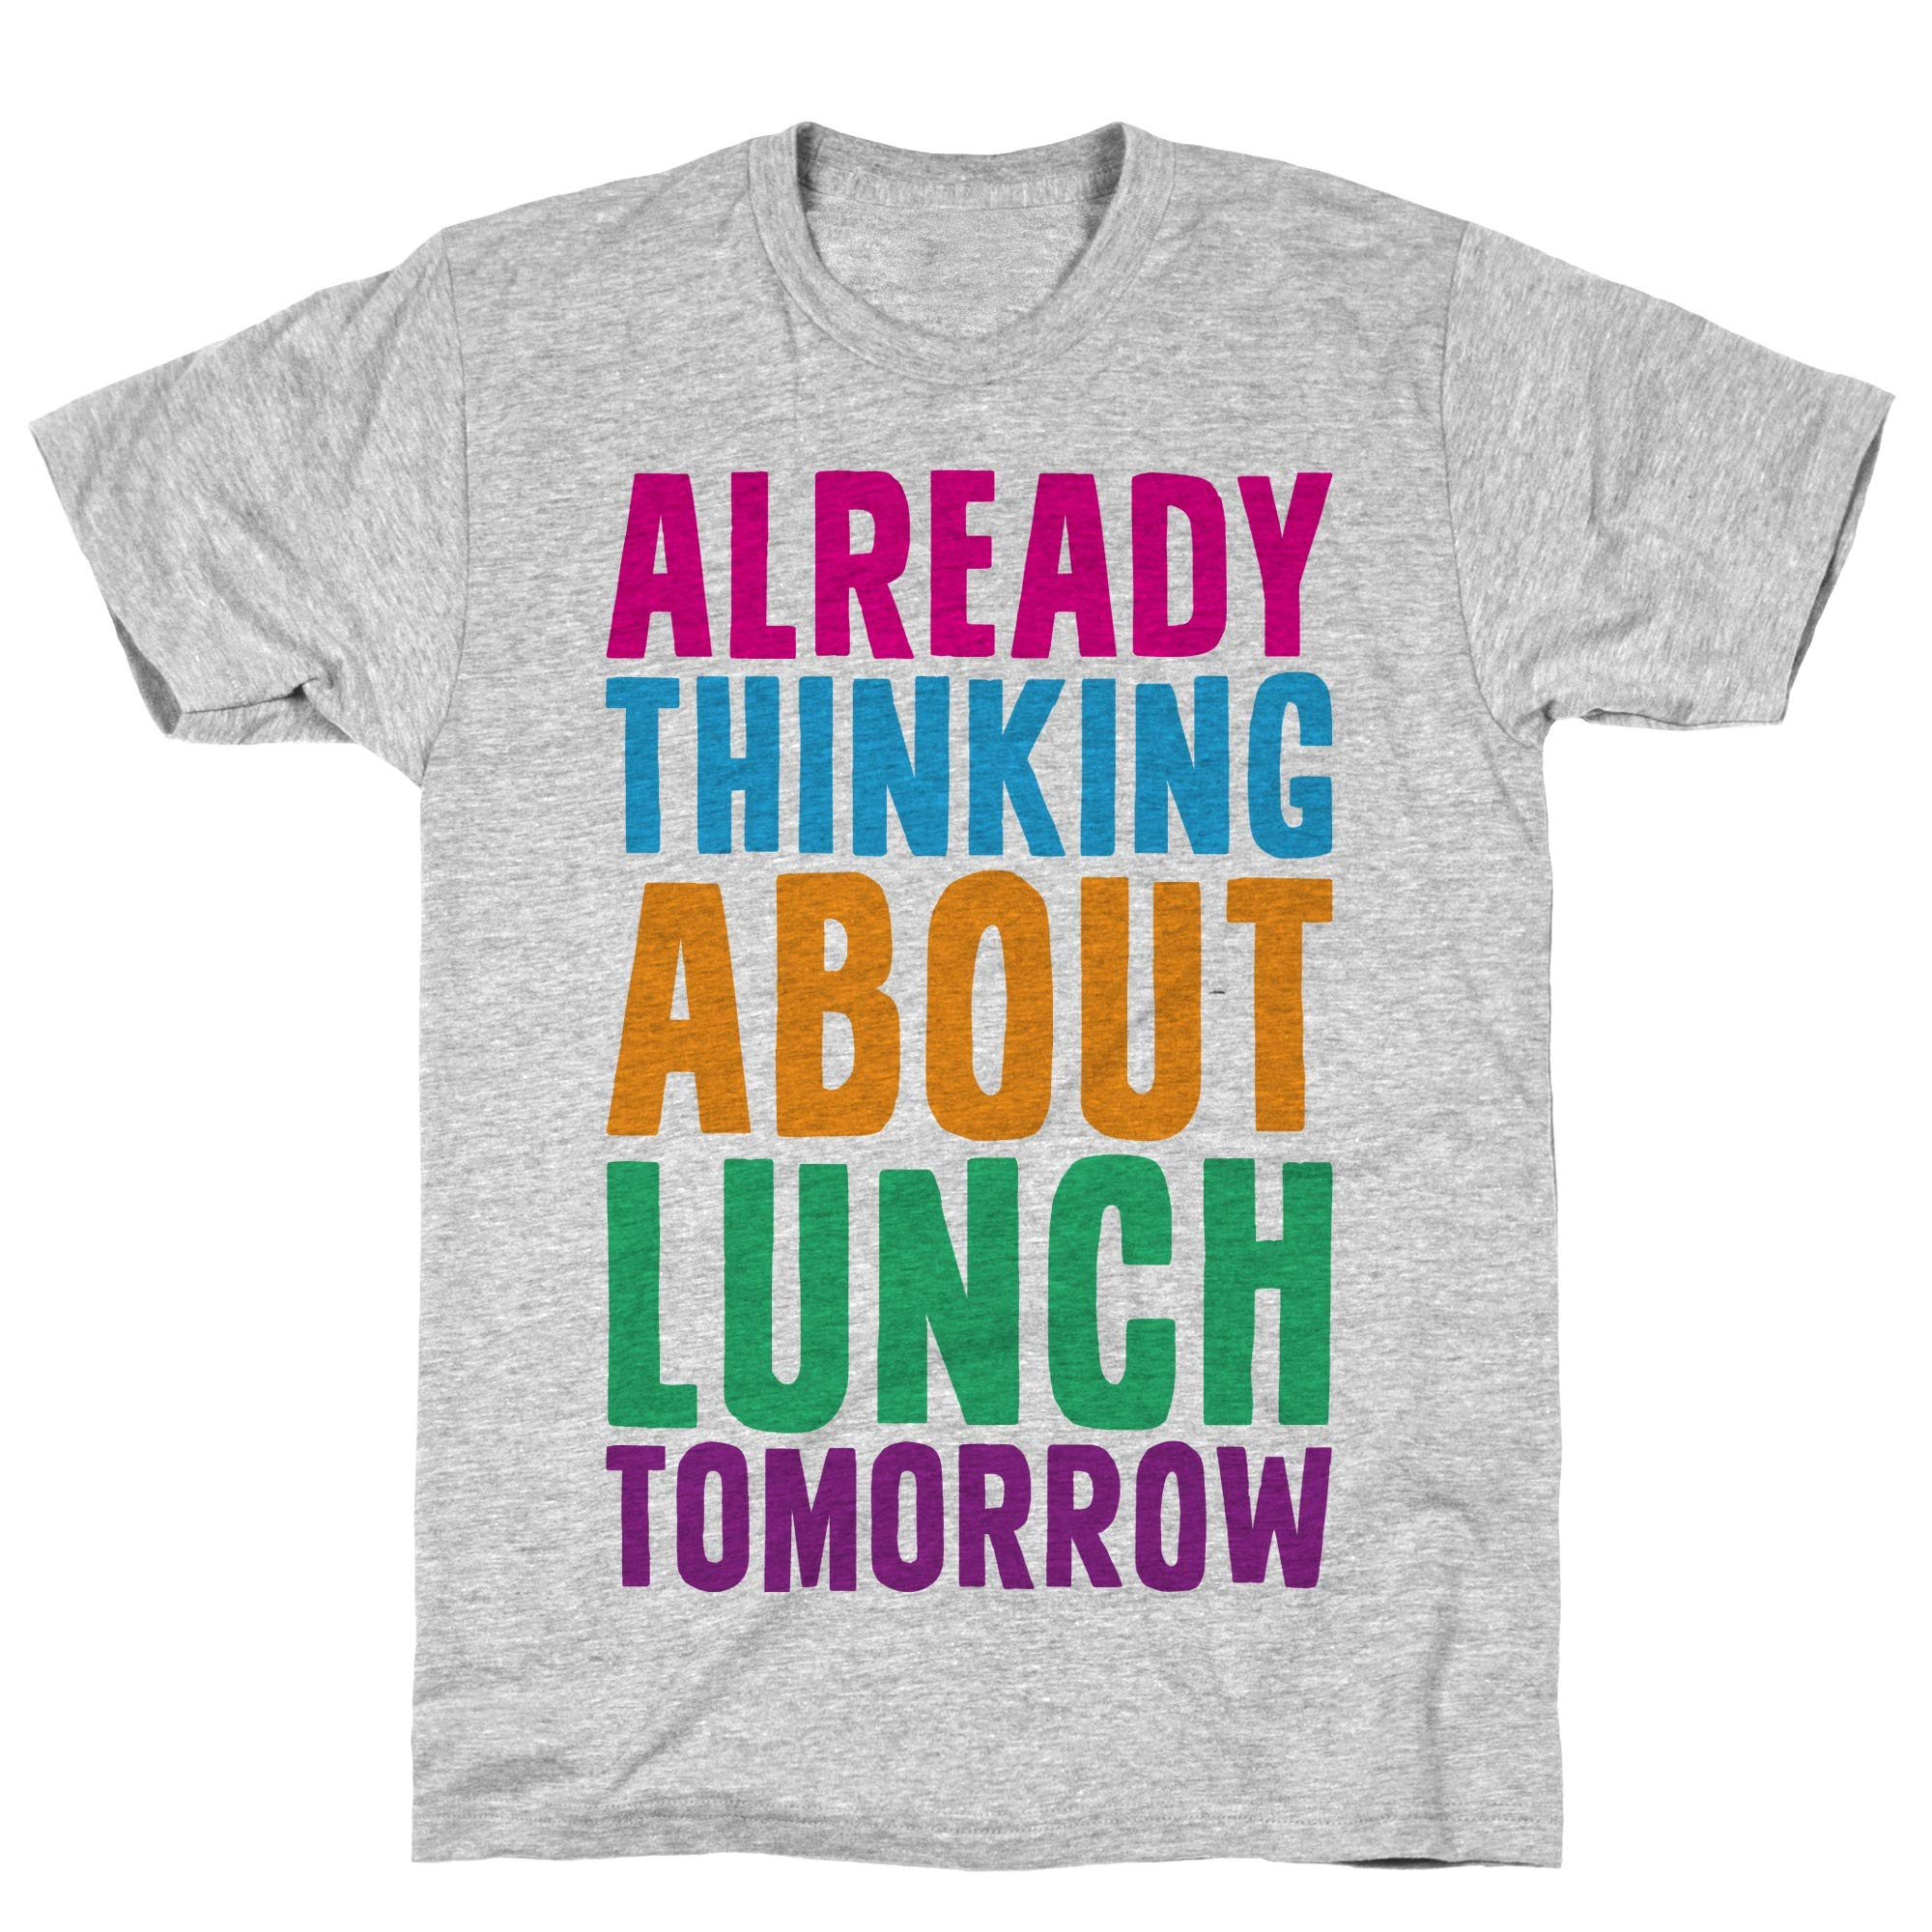 Already Thinking About Lunch Tomorrow Athletic Gray Tee 7340 Shirts